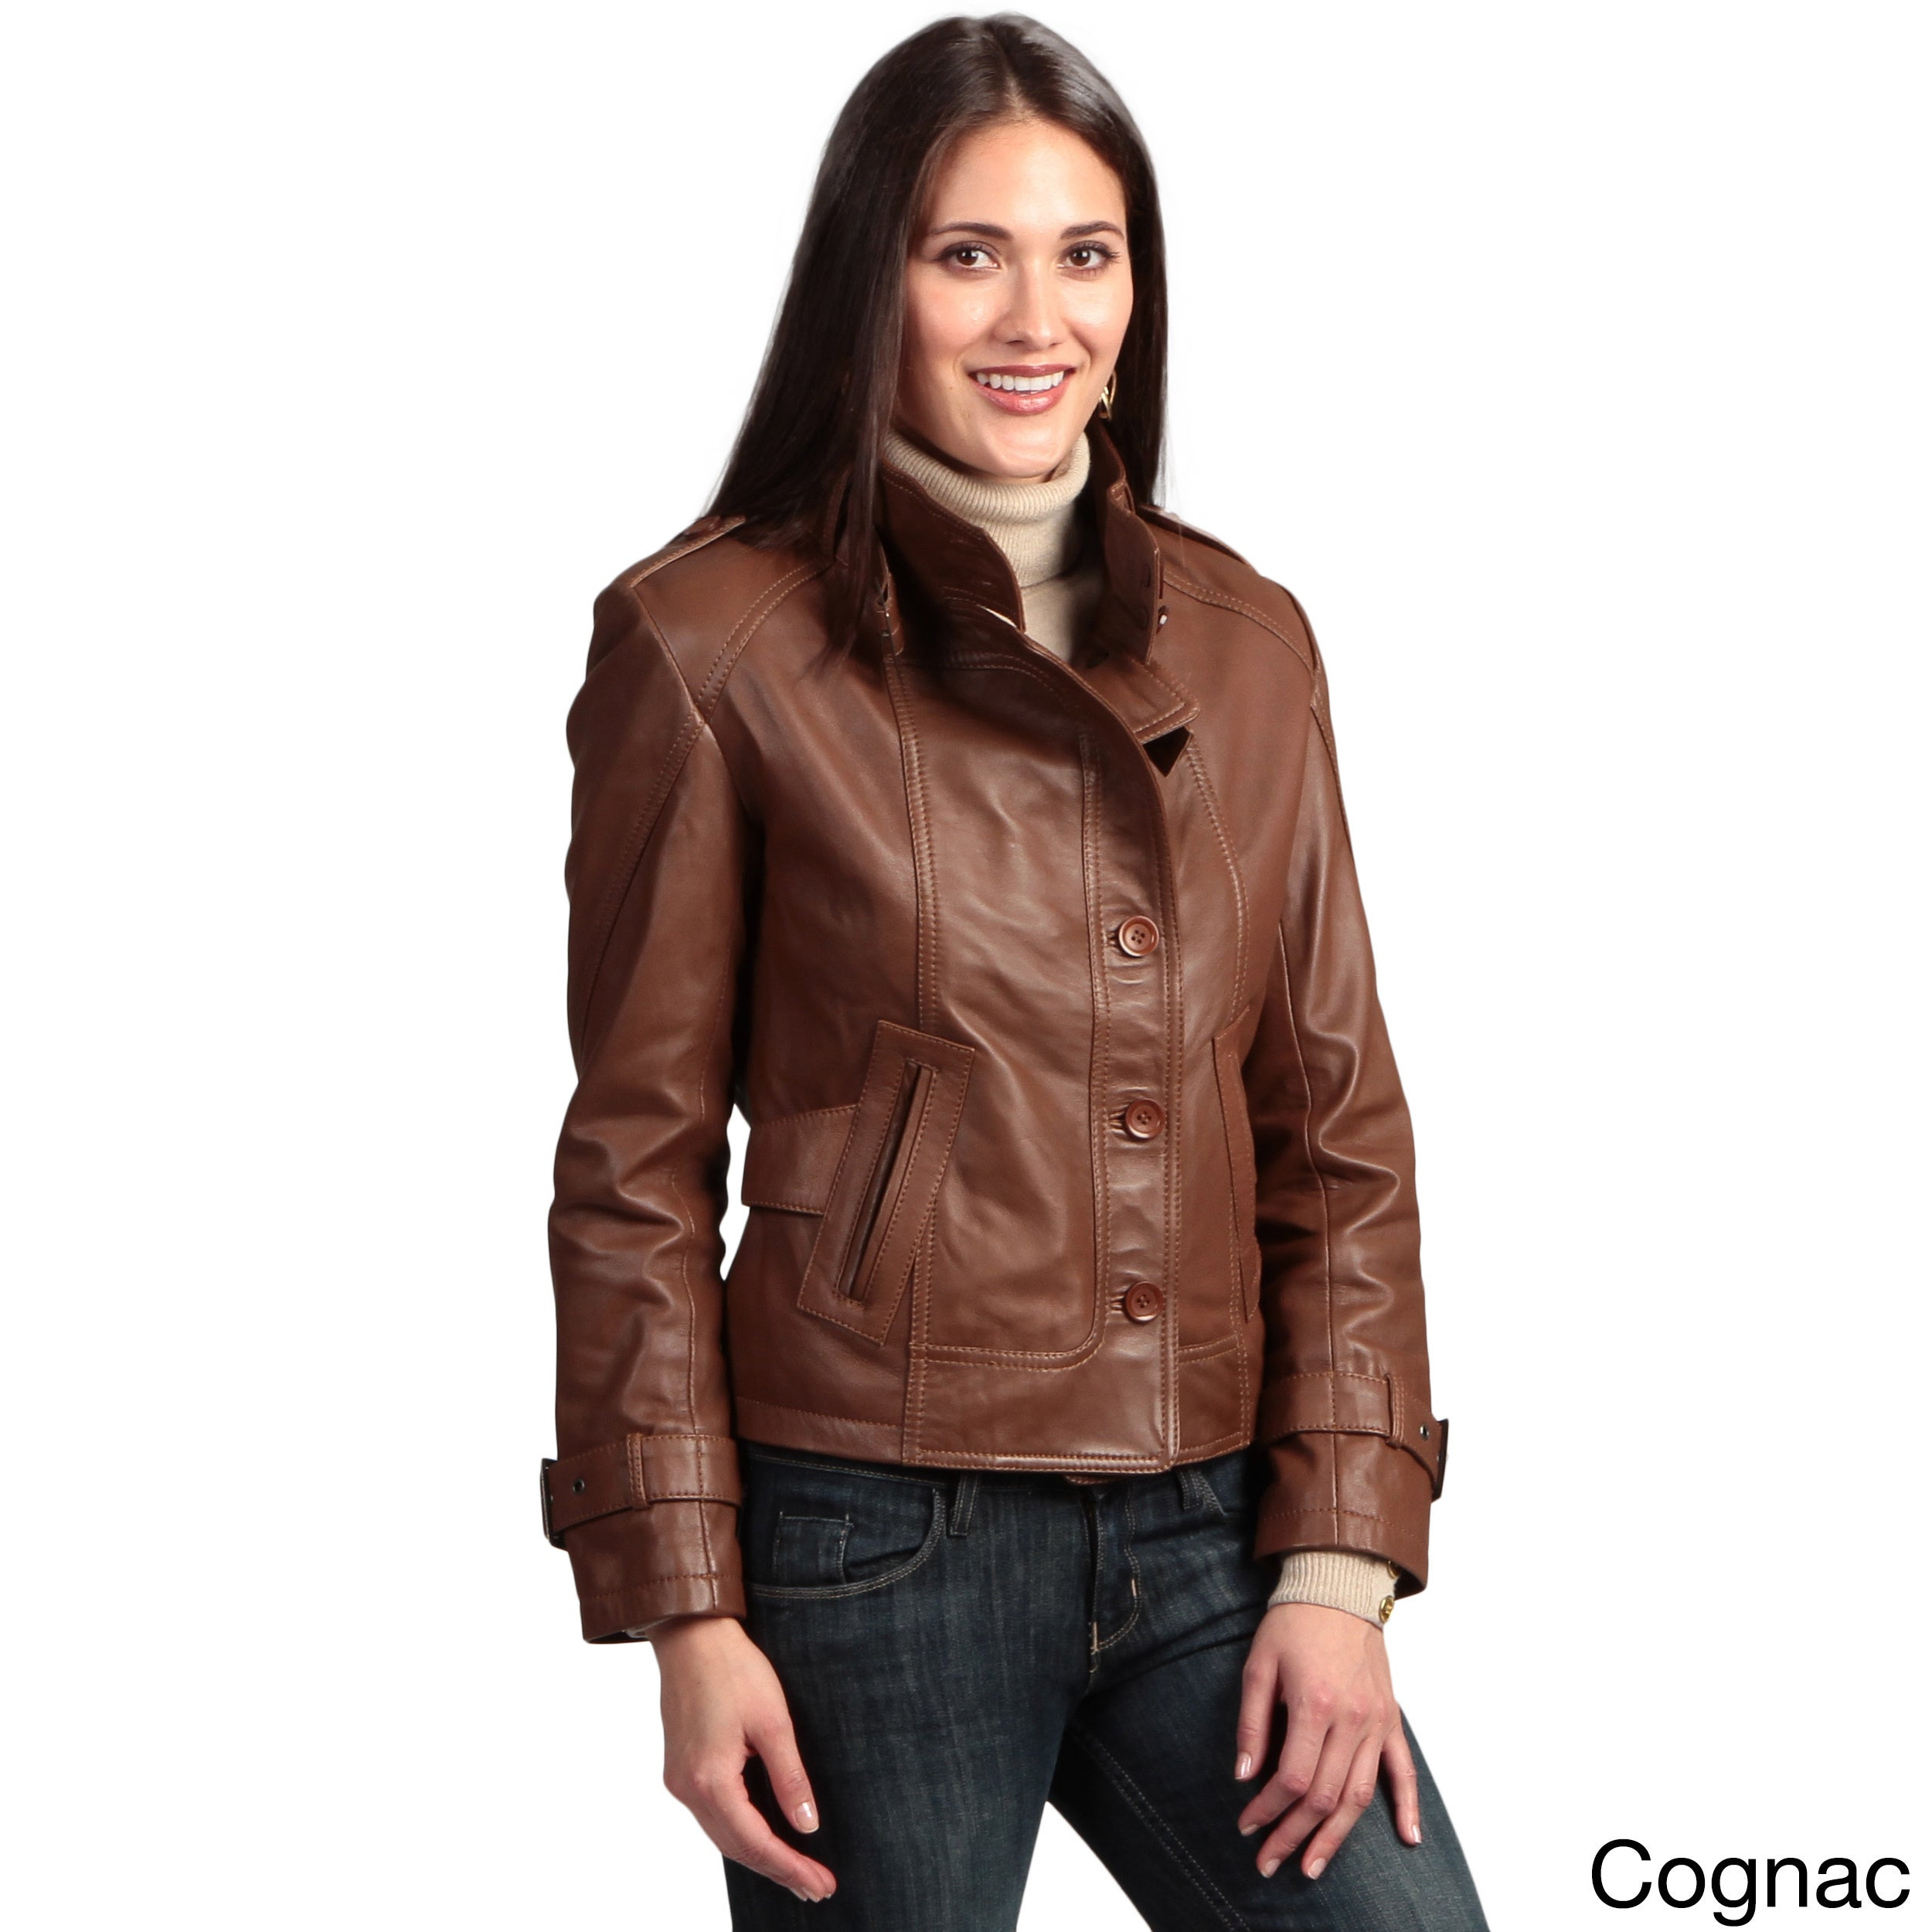 separation shoes 42693 1daf3 Collezione Italia Women's Lambskin Leather Jacket